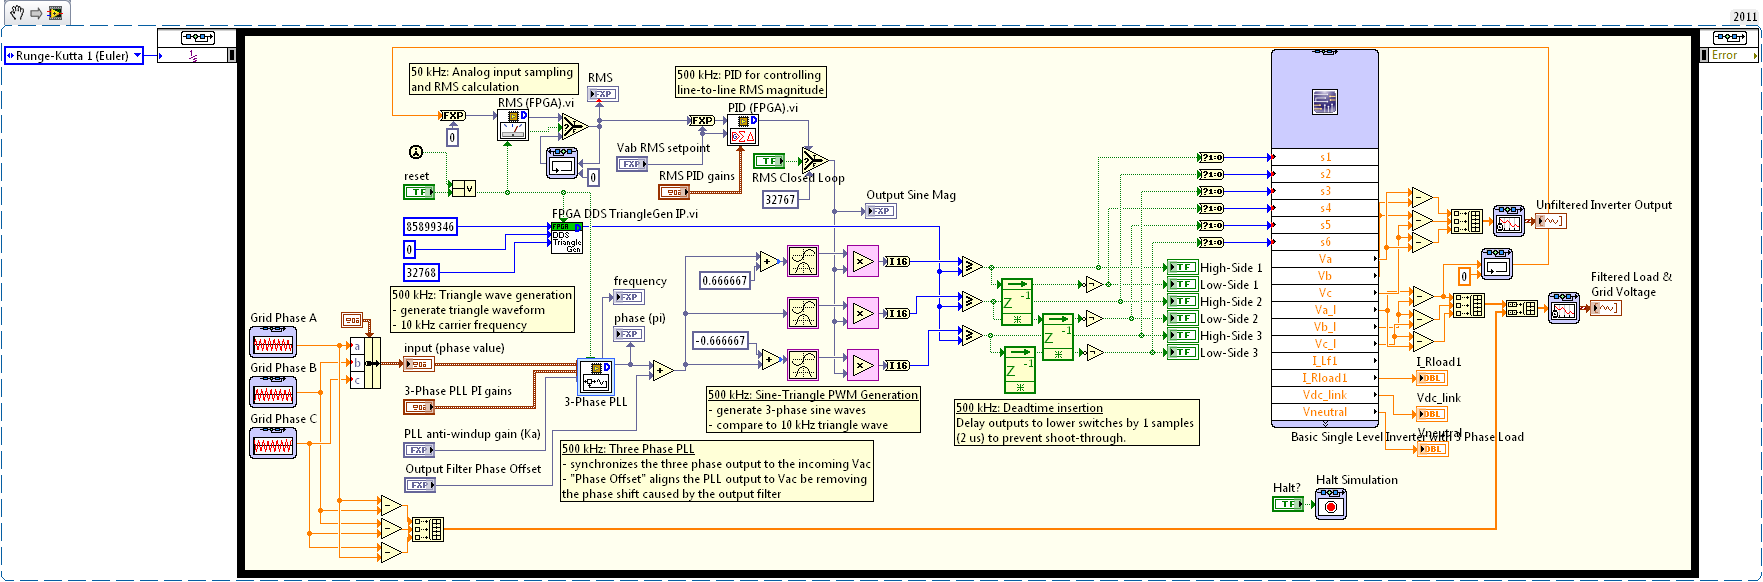 LV4 complete system simulation of a 3 phase inverter using ni multisim  at reclaimingppi.co